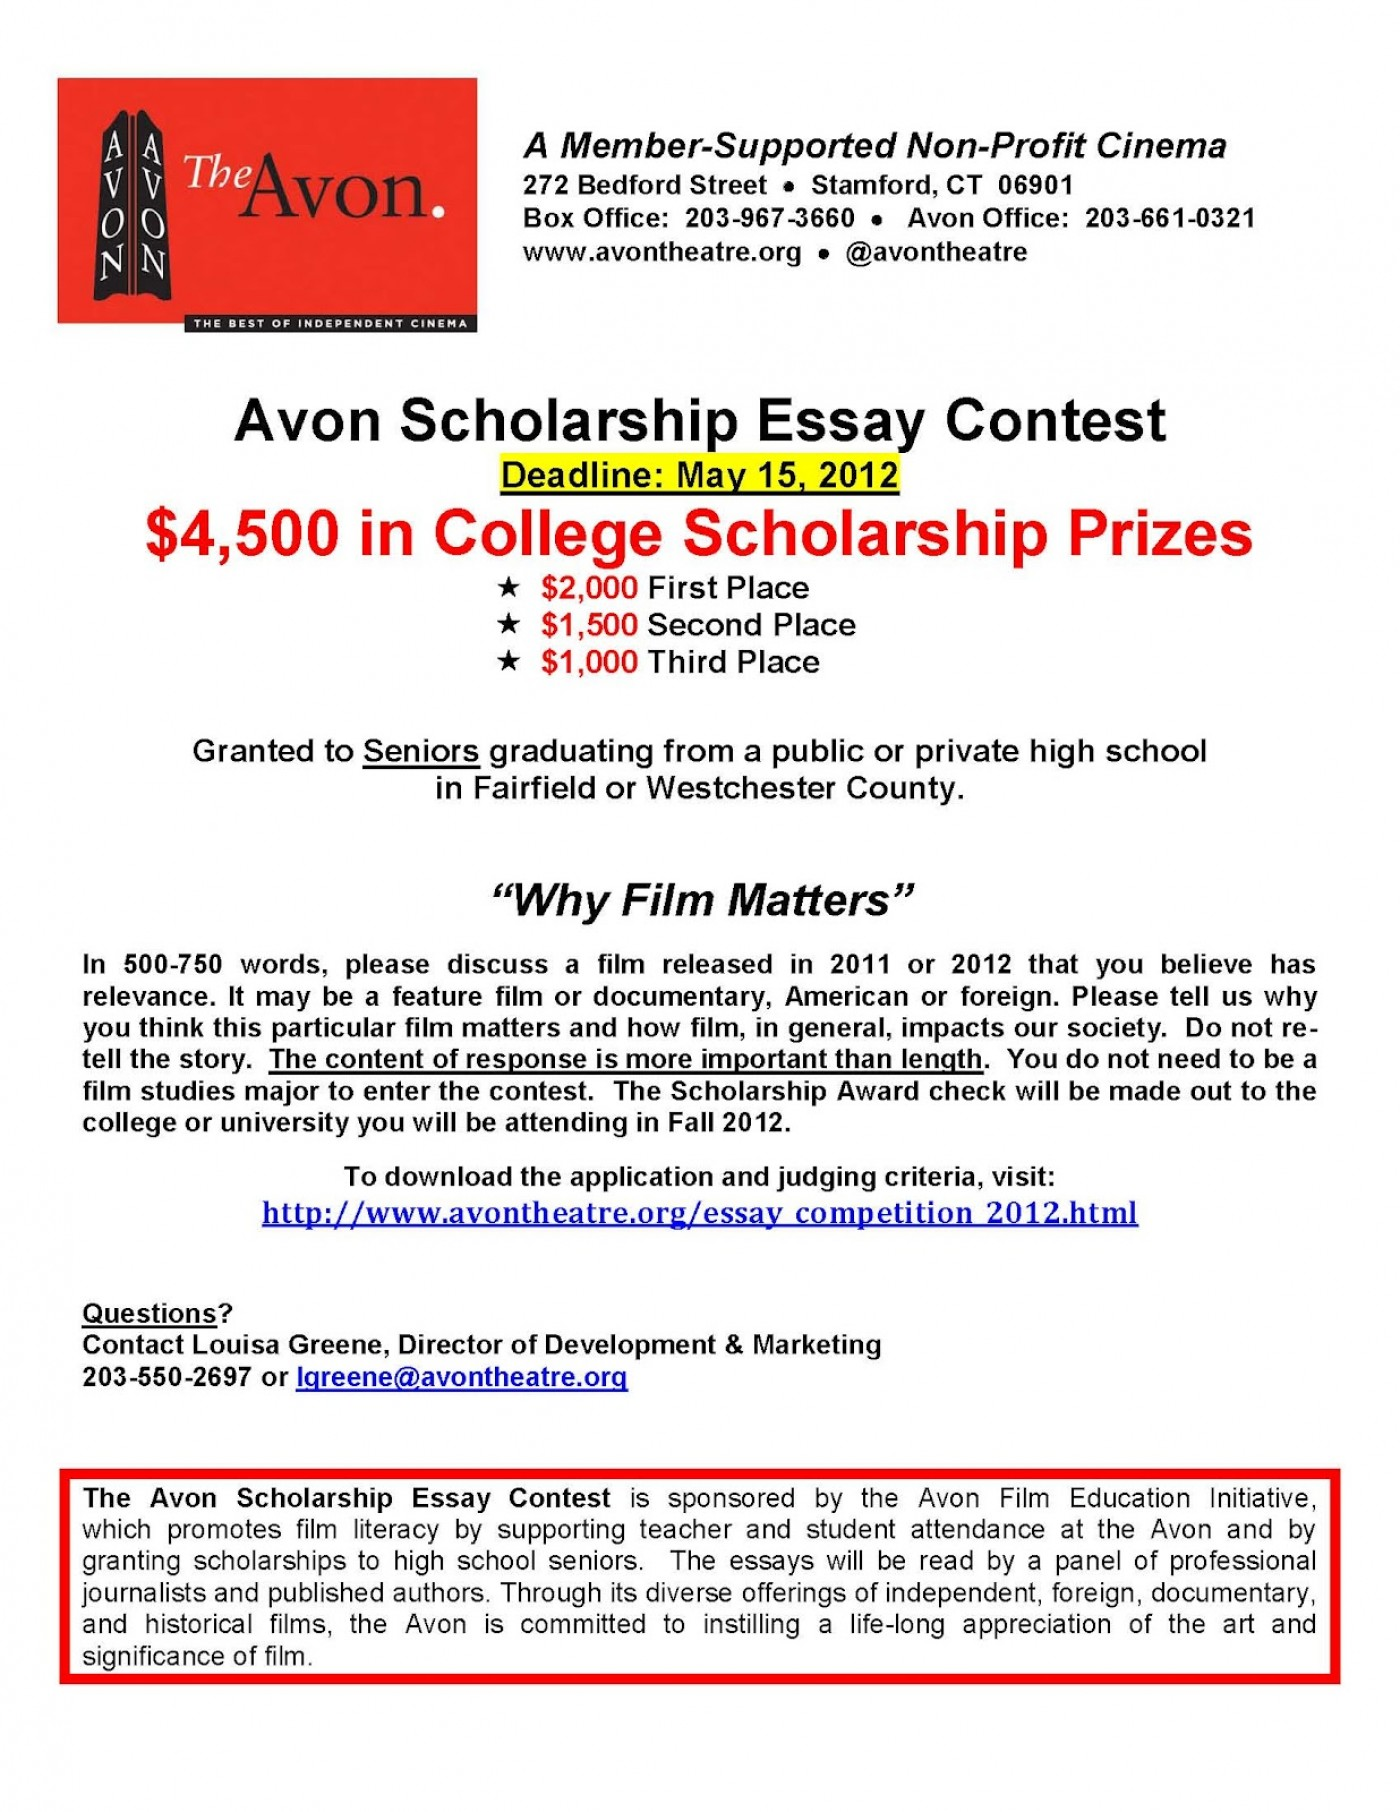 003 Non Essay Scholarships Example No College Scholarship Prowler Free For High School Seniors Avonscholarshipessaycontest2012 In Texas California Class Of Short Imposing Undergraduates 1400